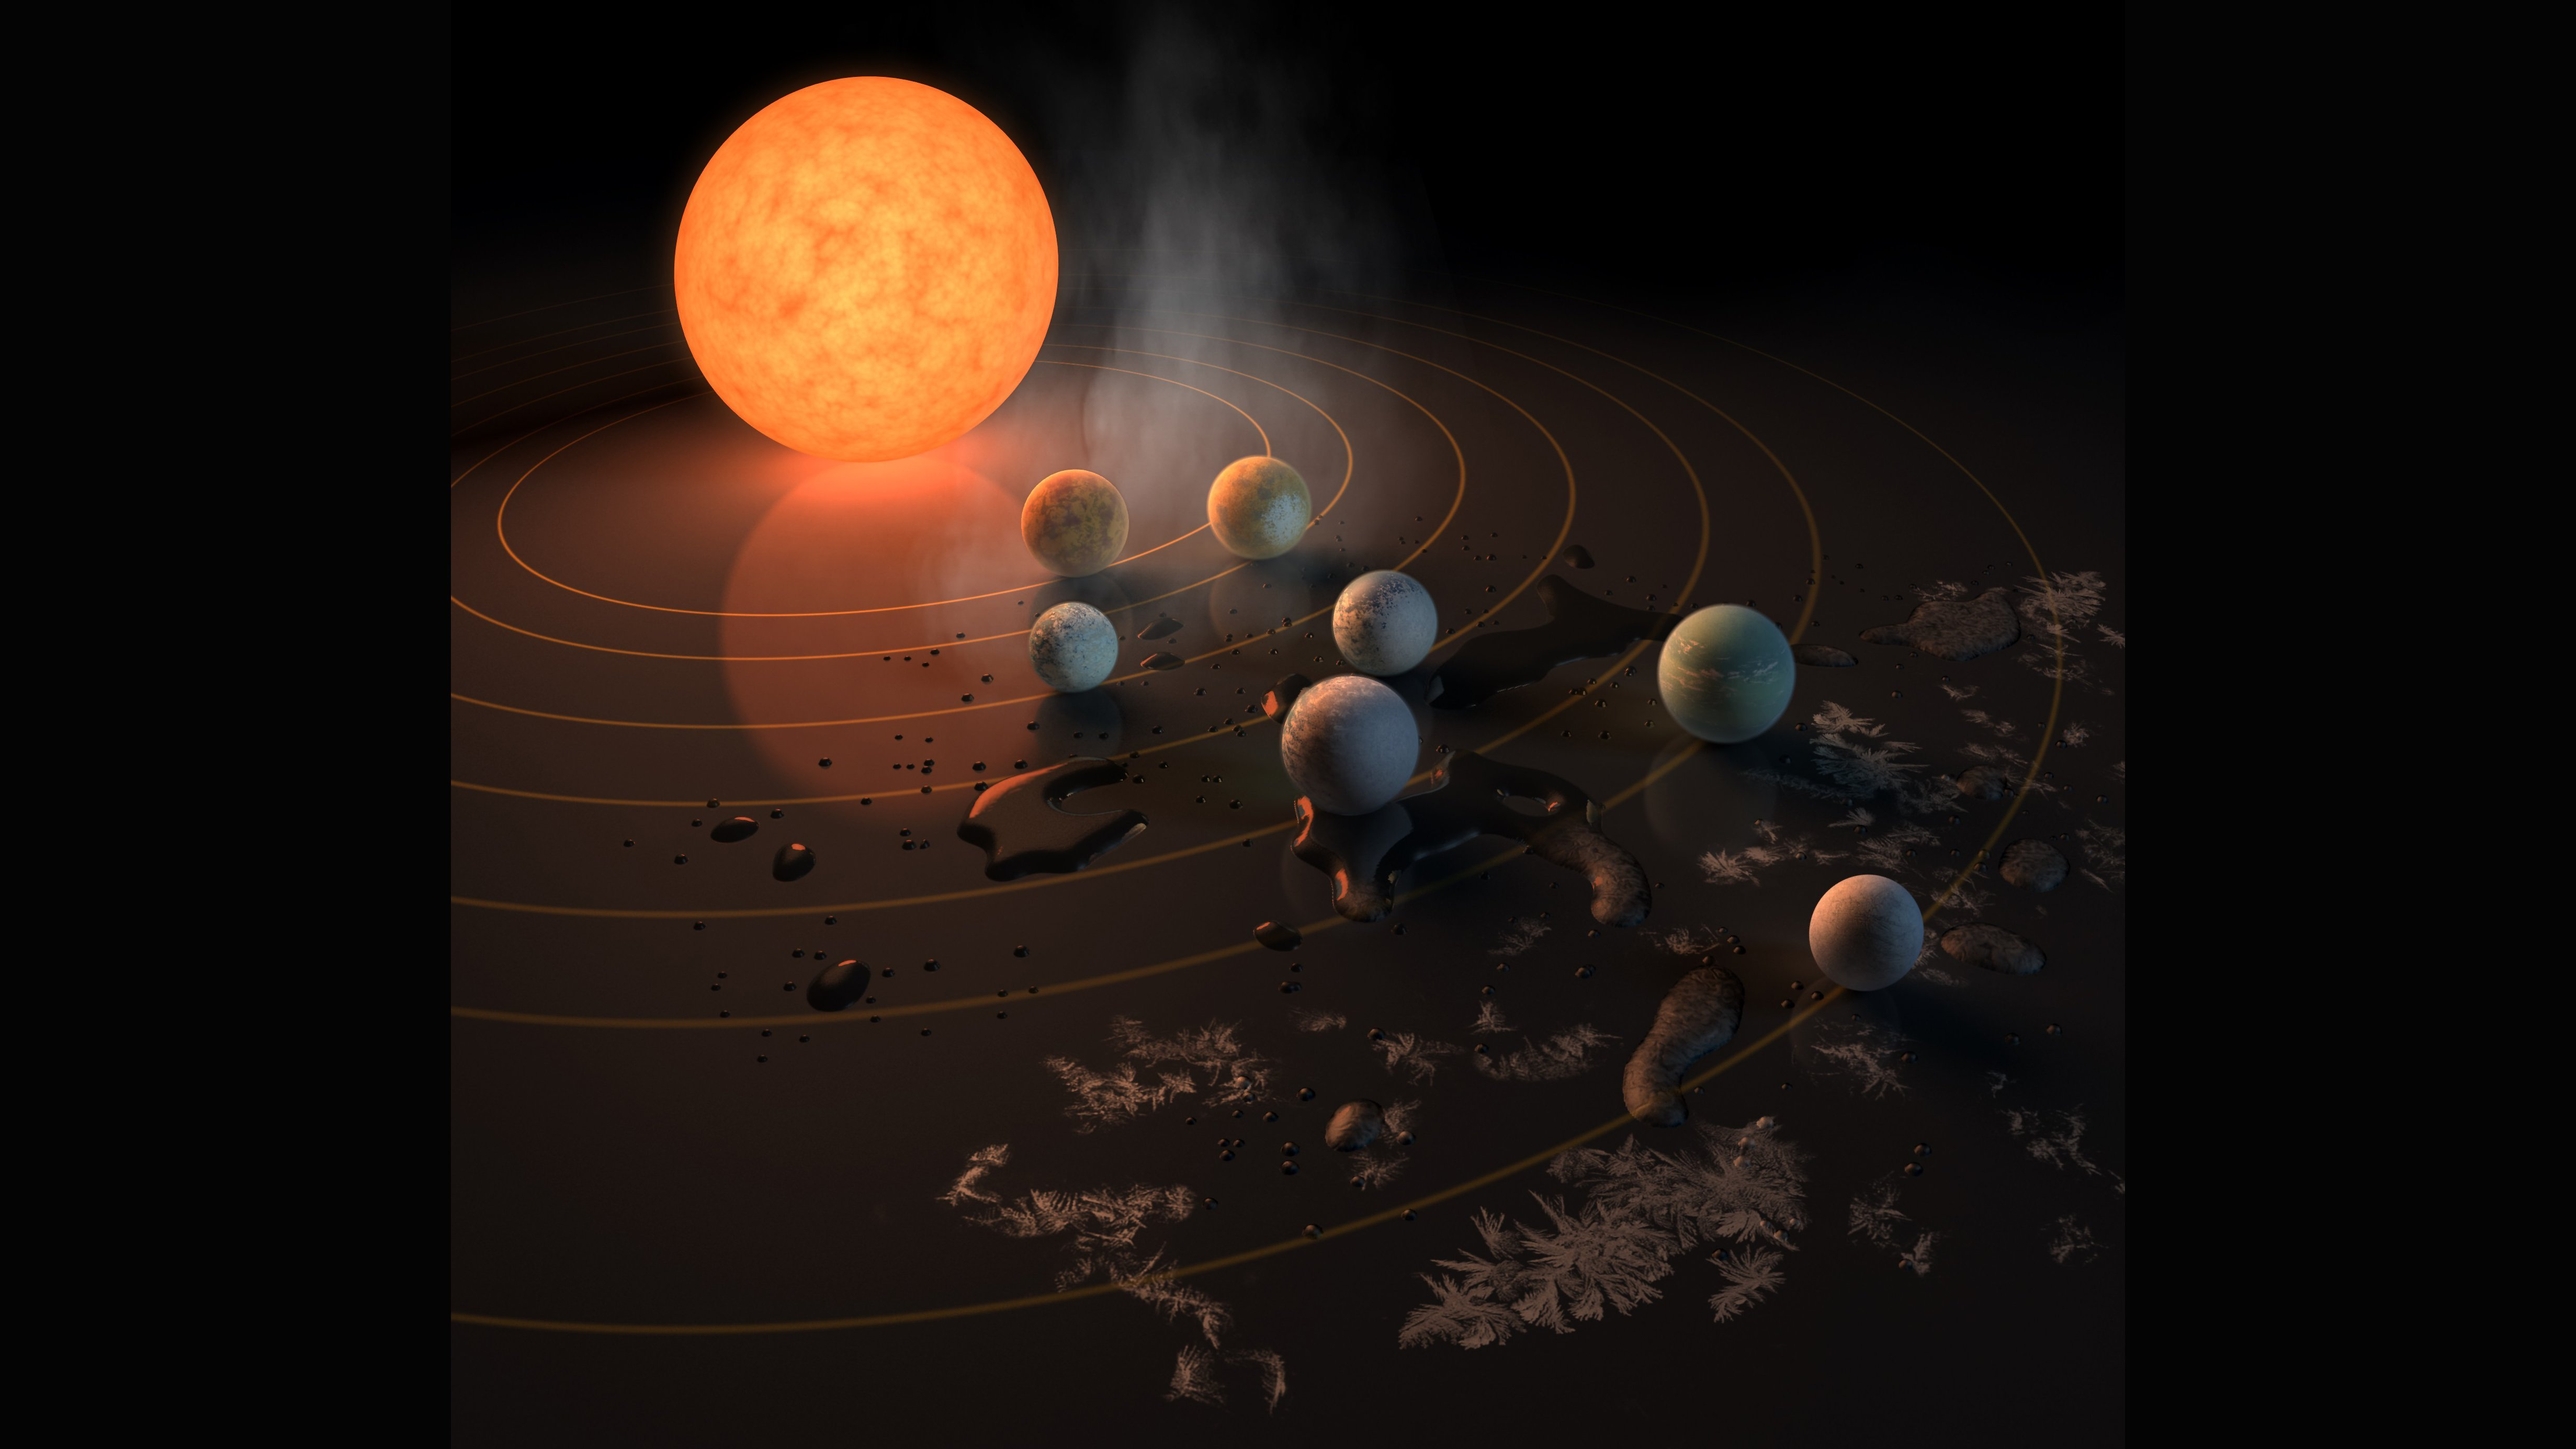 Astronomers have found at least seven Earth-like planets orbiting the same star 40 light-years away, according to a study published Wednesday, Feb. 22, 2017 in the journal Nature. The findings were also announced at a news conference at NASA Headquarters in Washington.